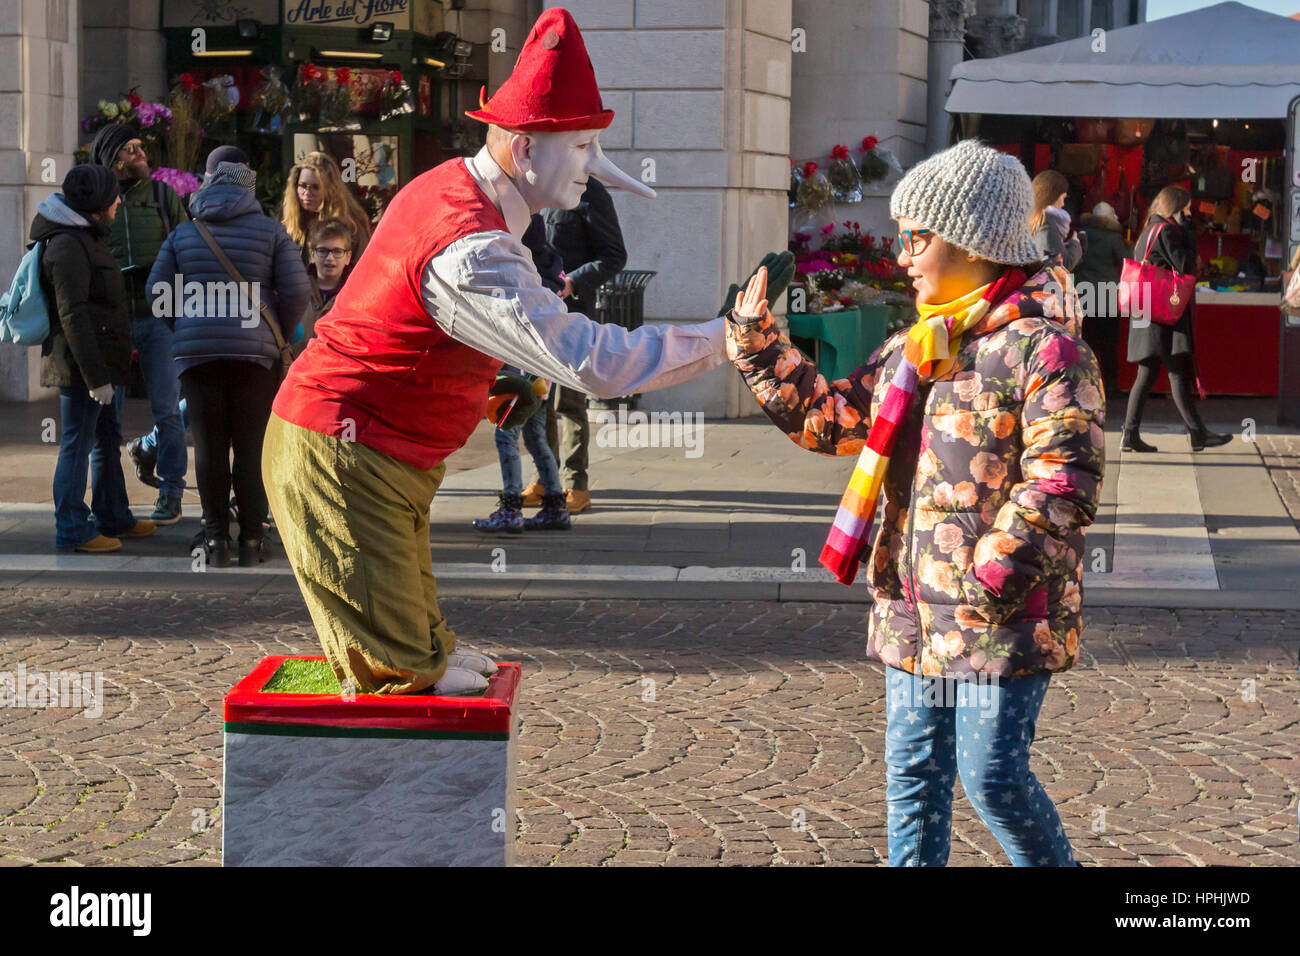 A street clown entertains a young lady. - Stock Image